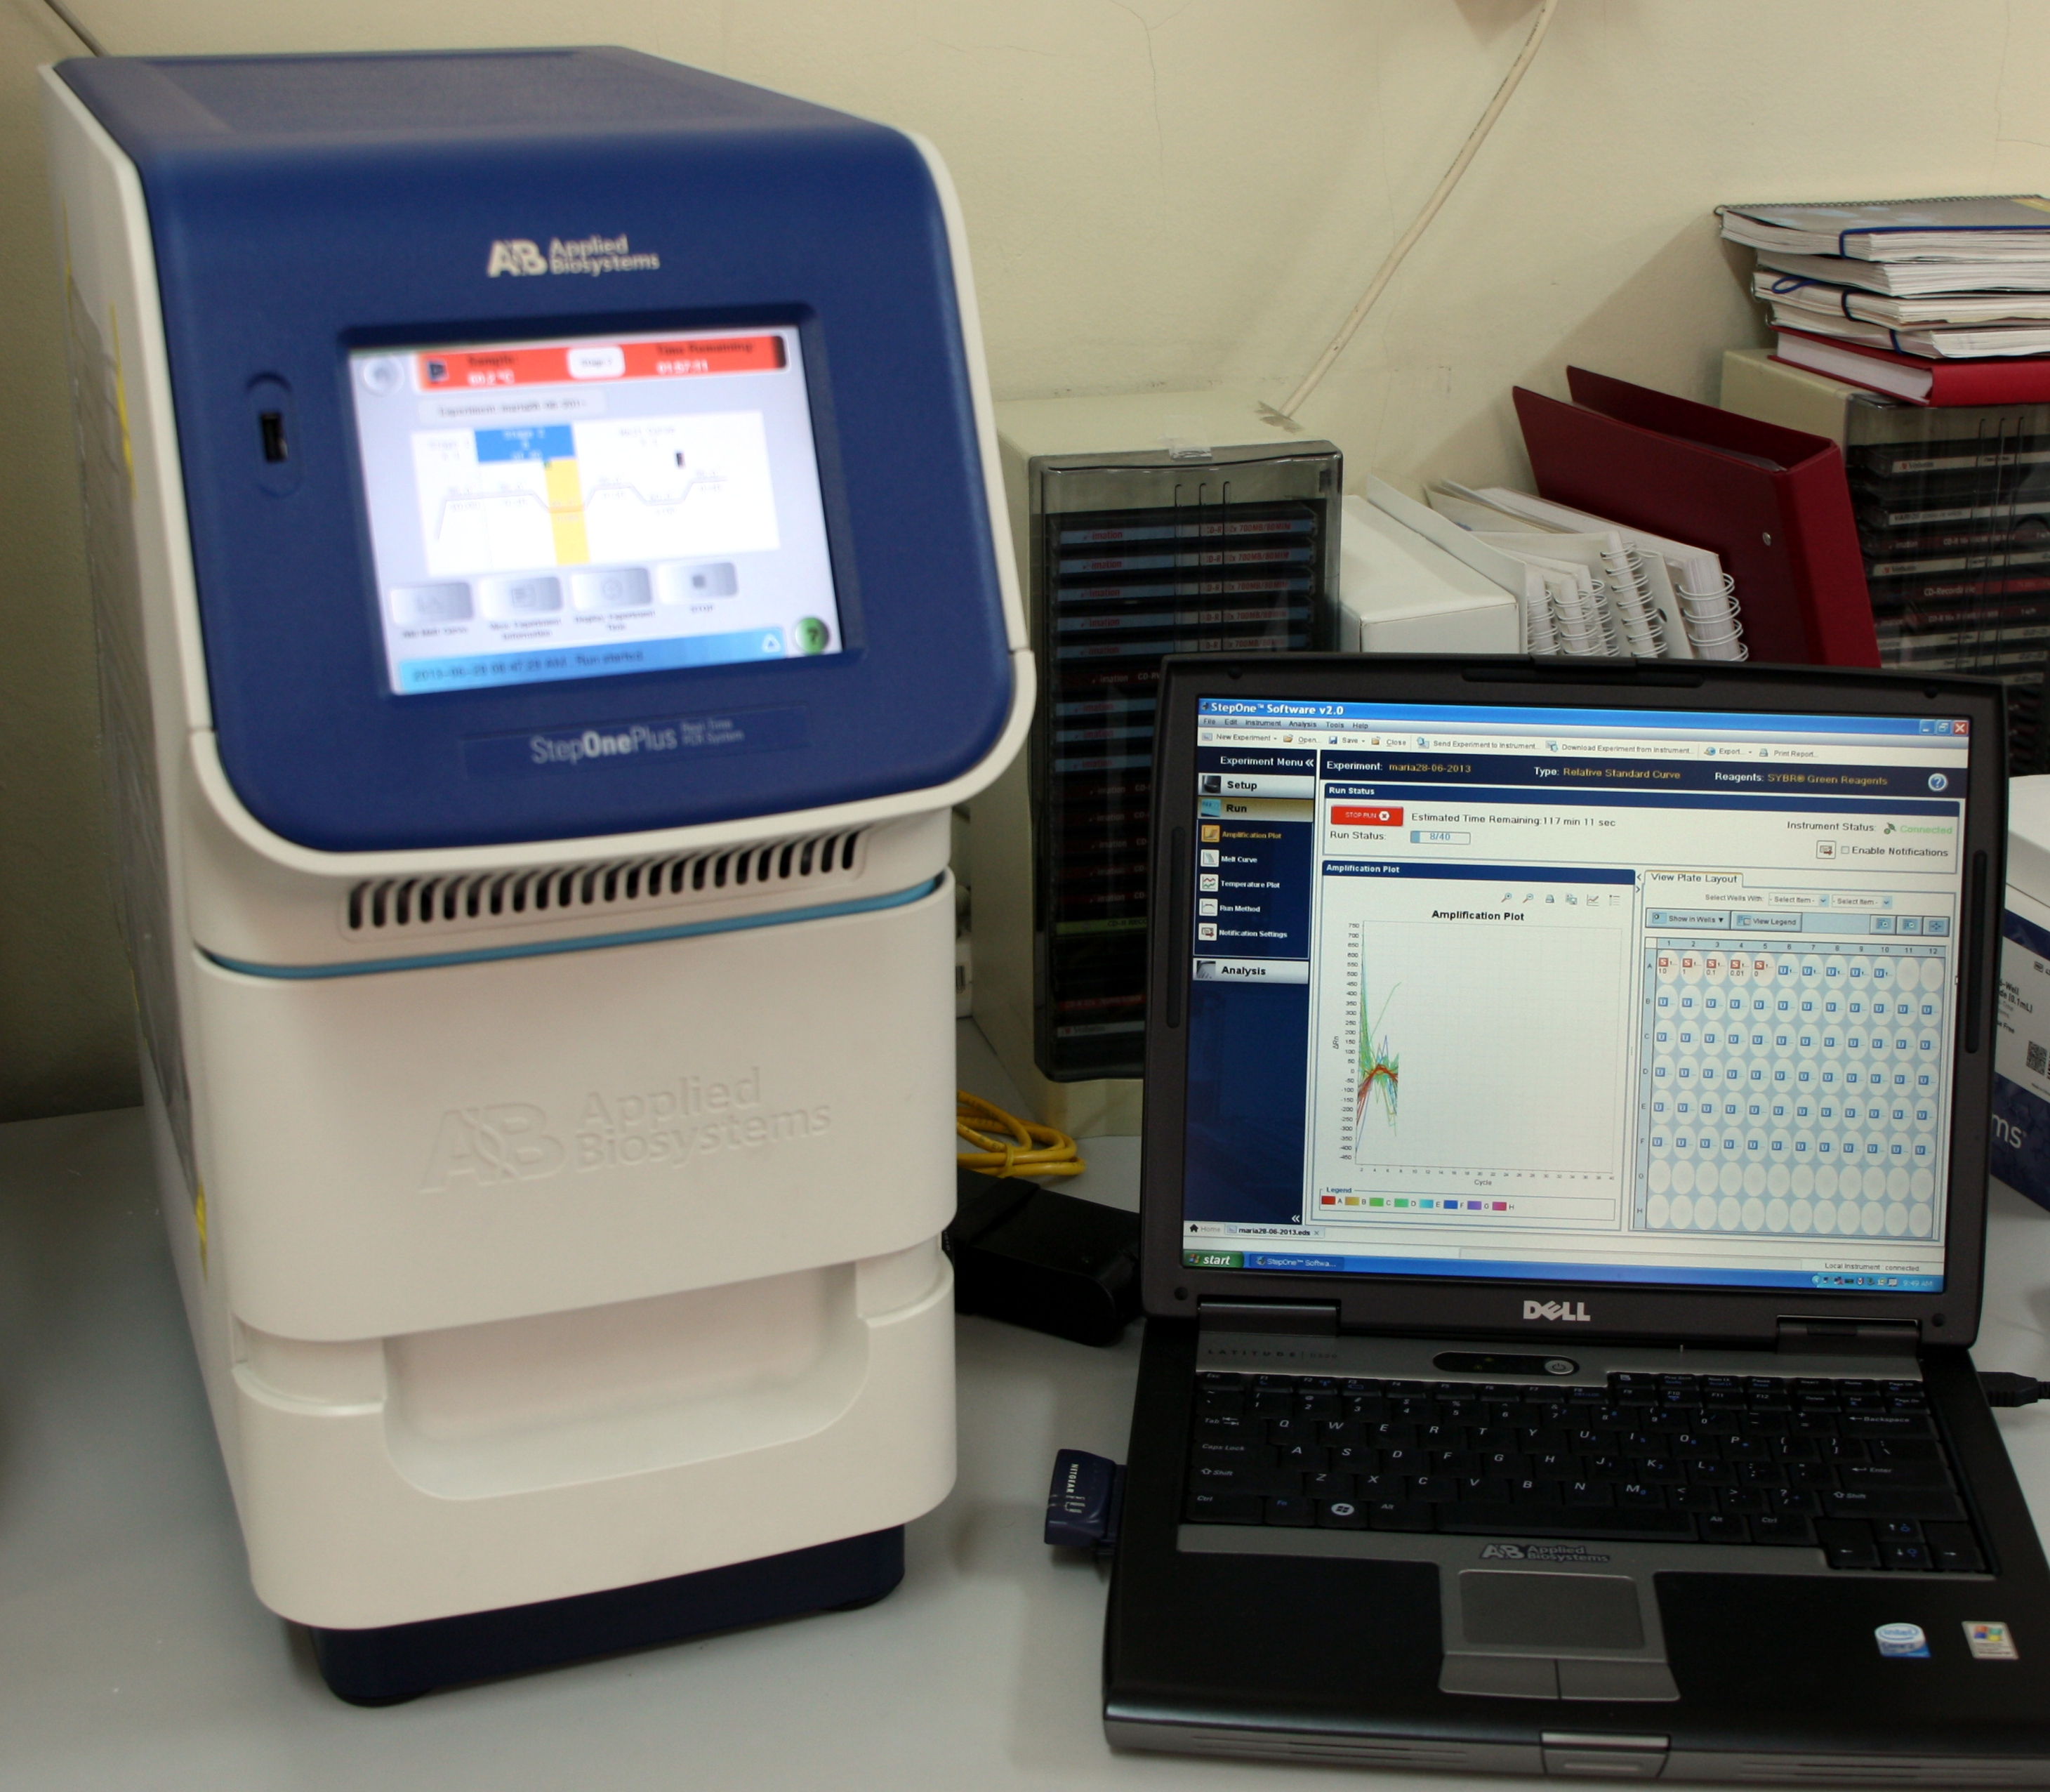 StepOne real-time PCR system.